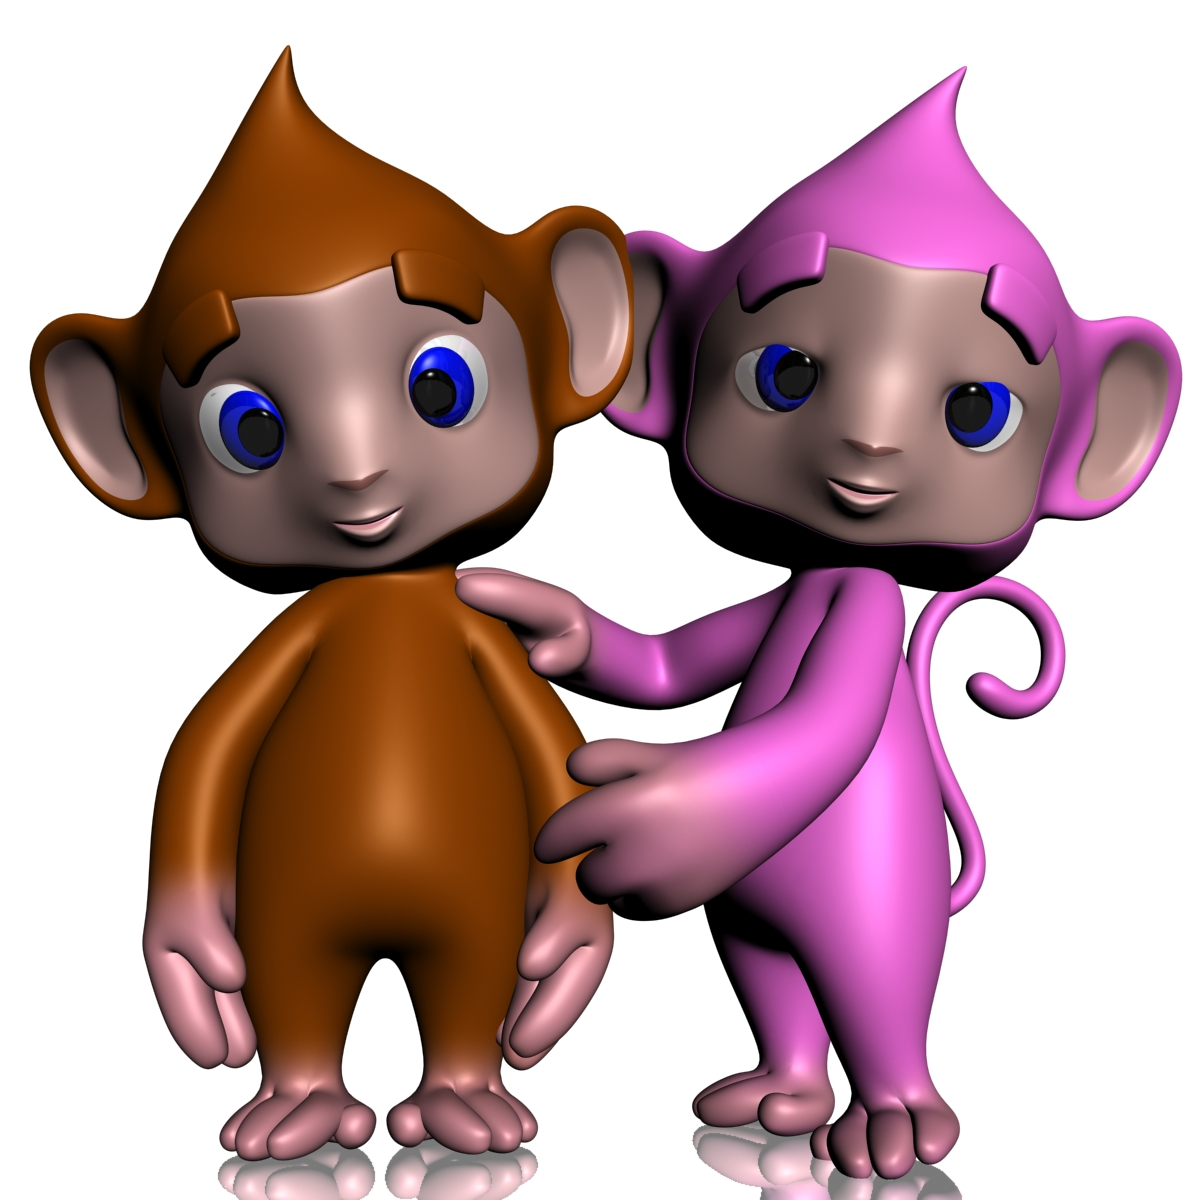 colorful cartoon monkey rigged 3d model 3ds max fbx  obj 164953